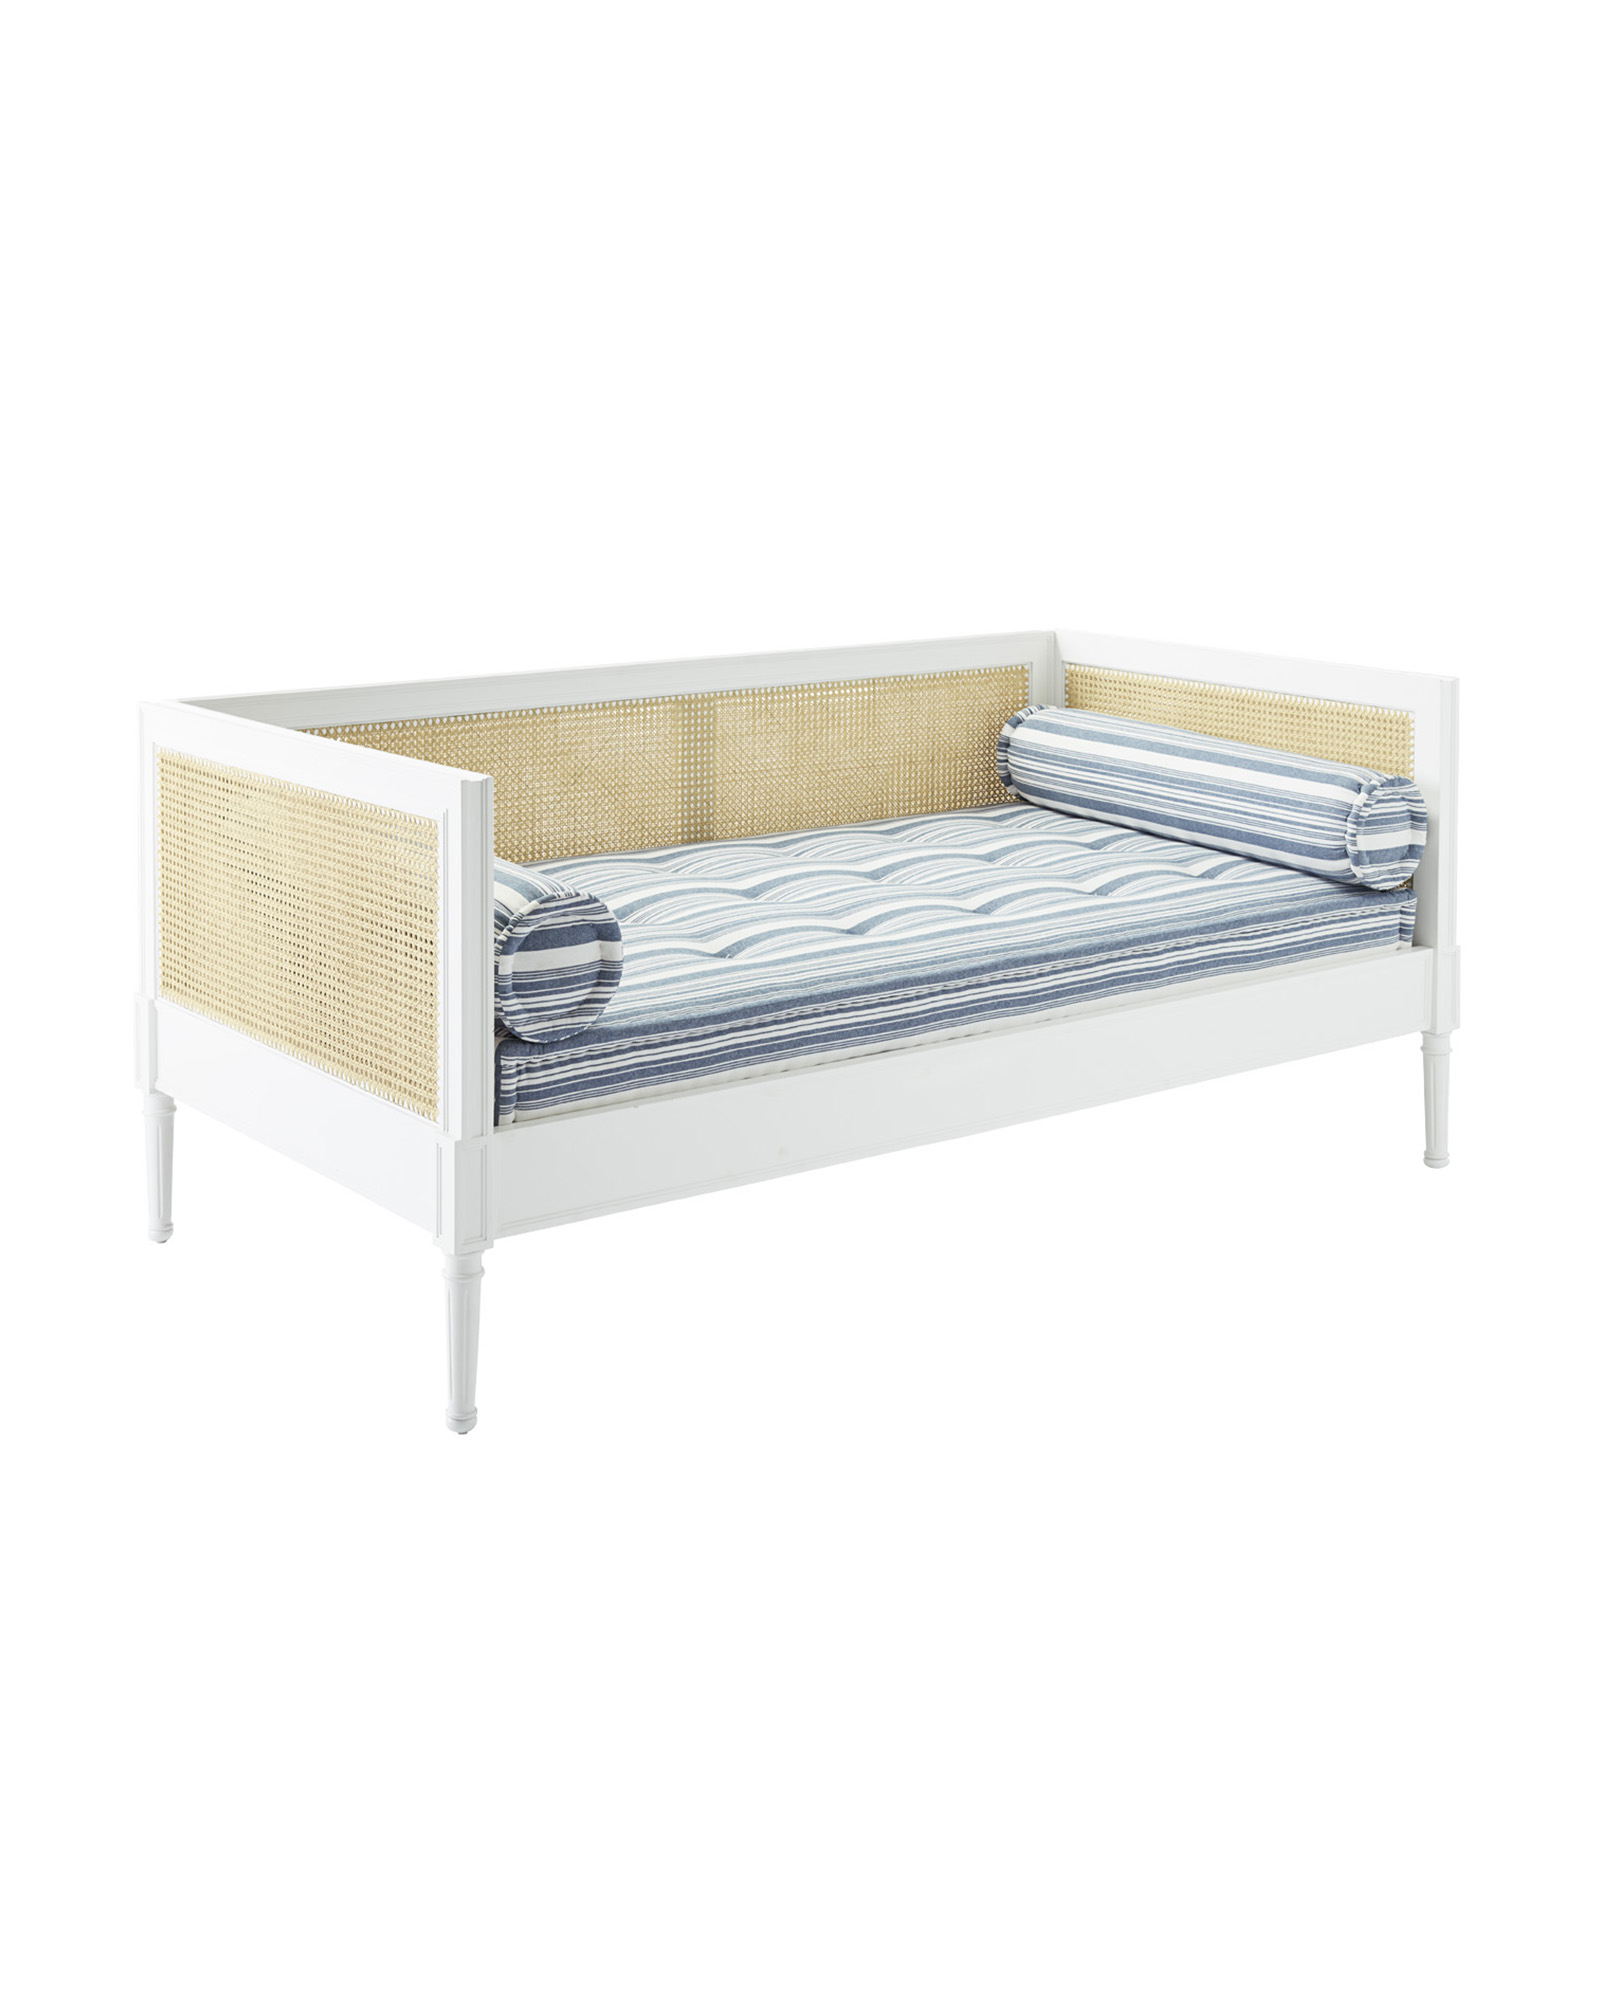 Harbour Cane Daybed,